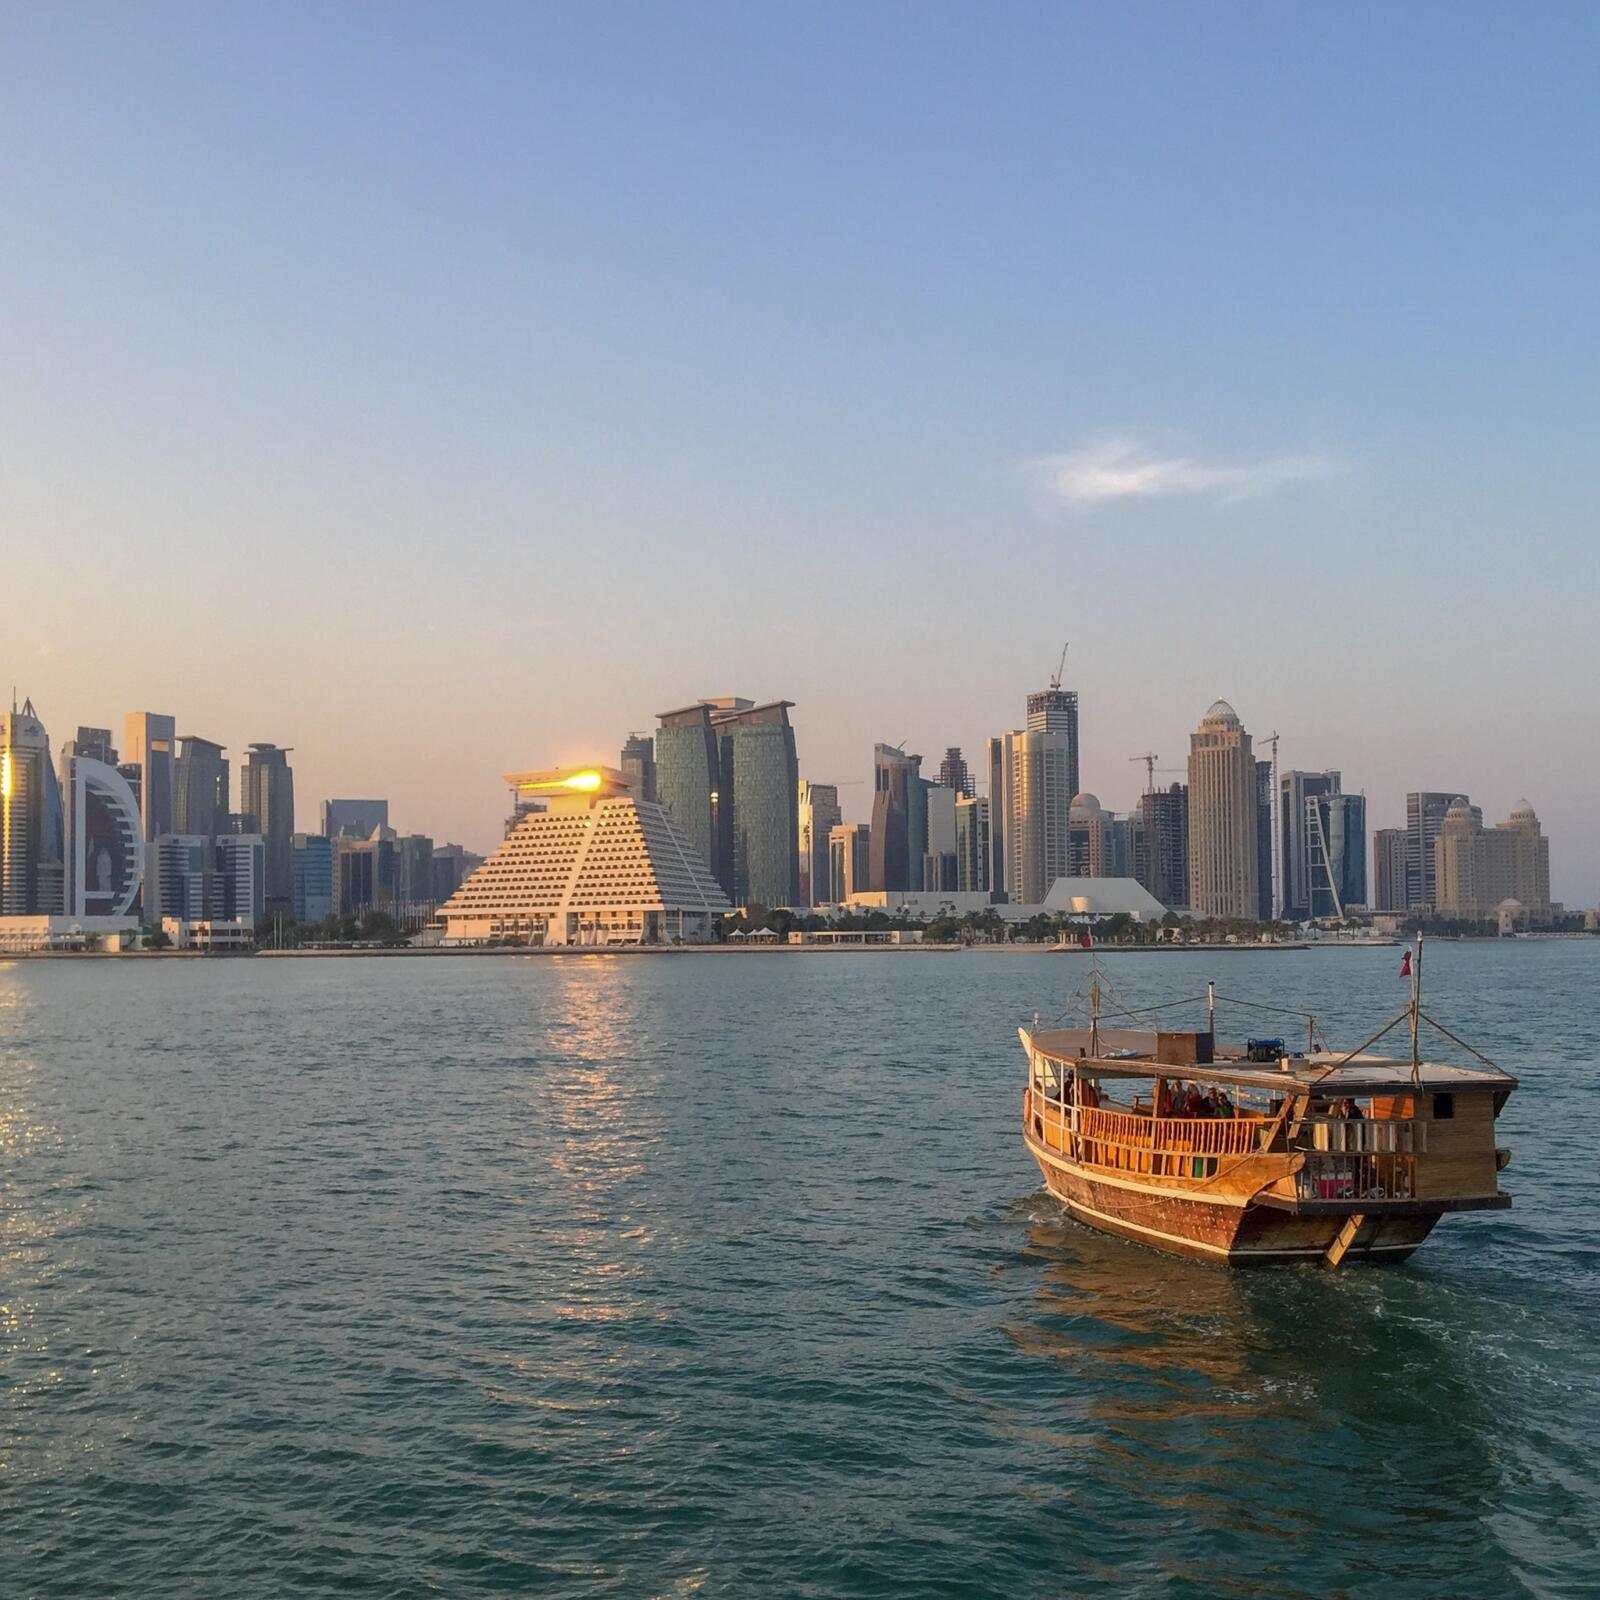 Qatar One Year On - Doha skyline at dust with a dhow boat in the aqua waters on the right